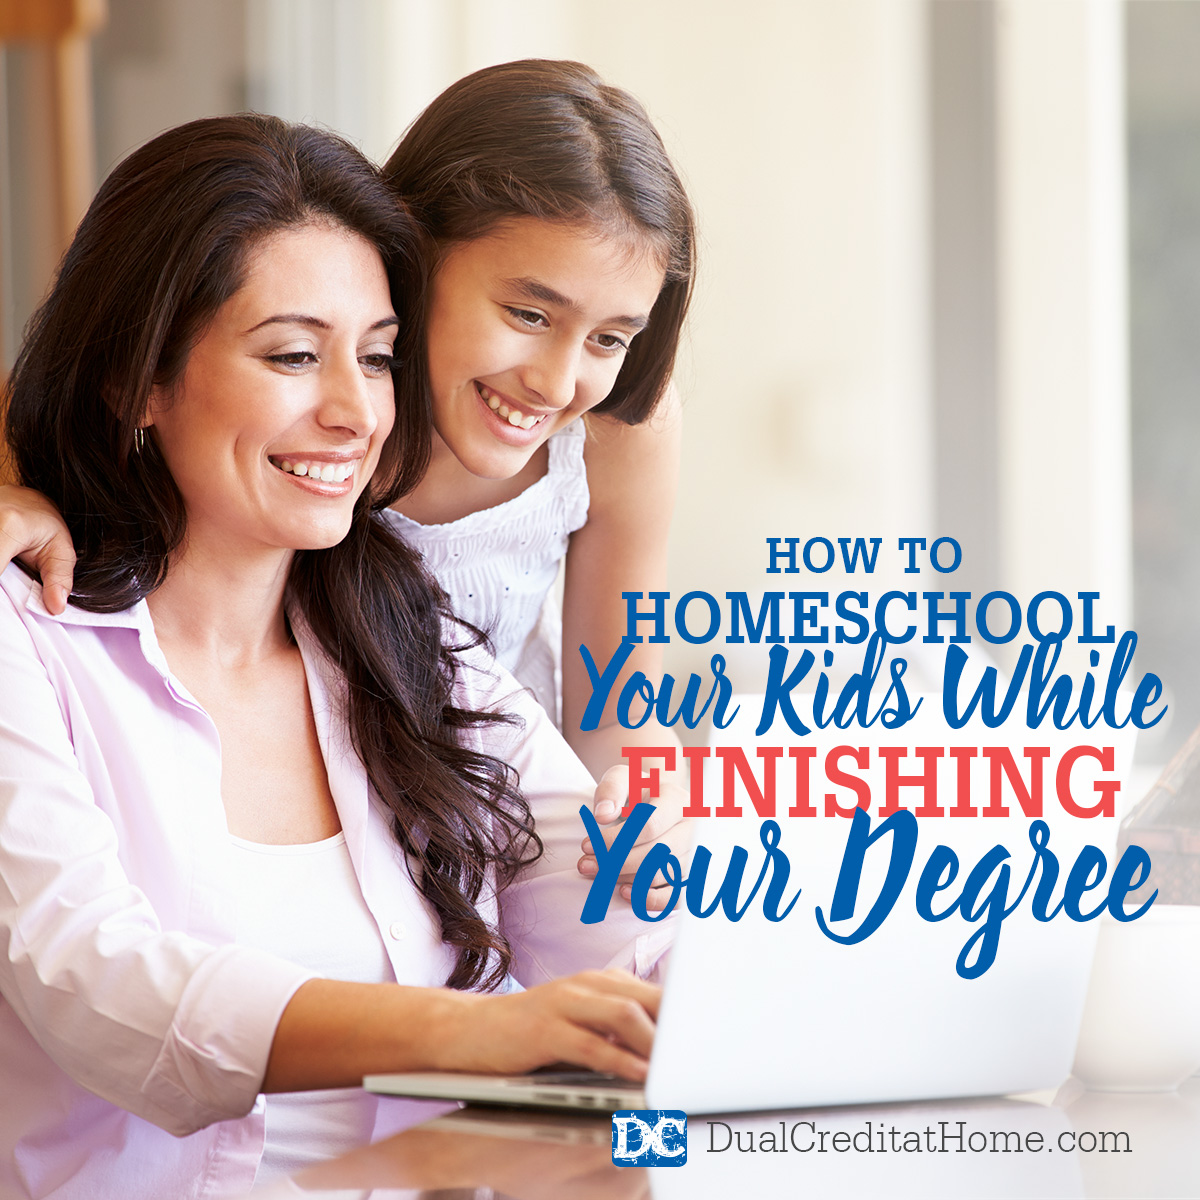 How to Homeschool Your Kids While Finishing Your Degree